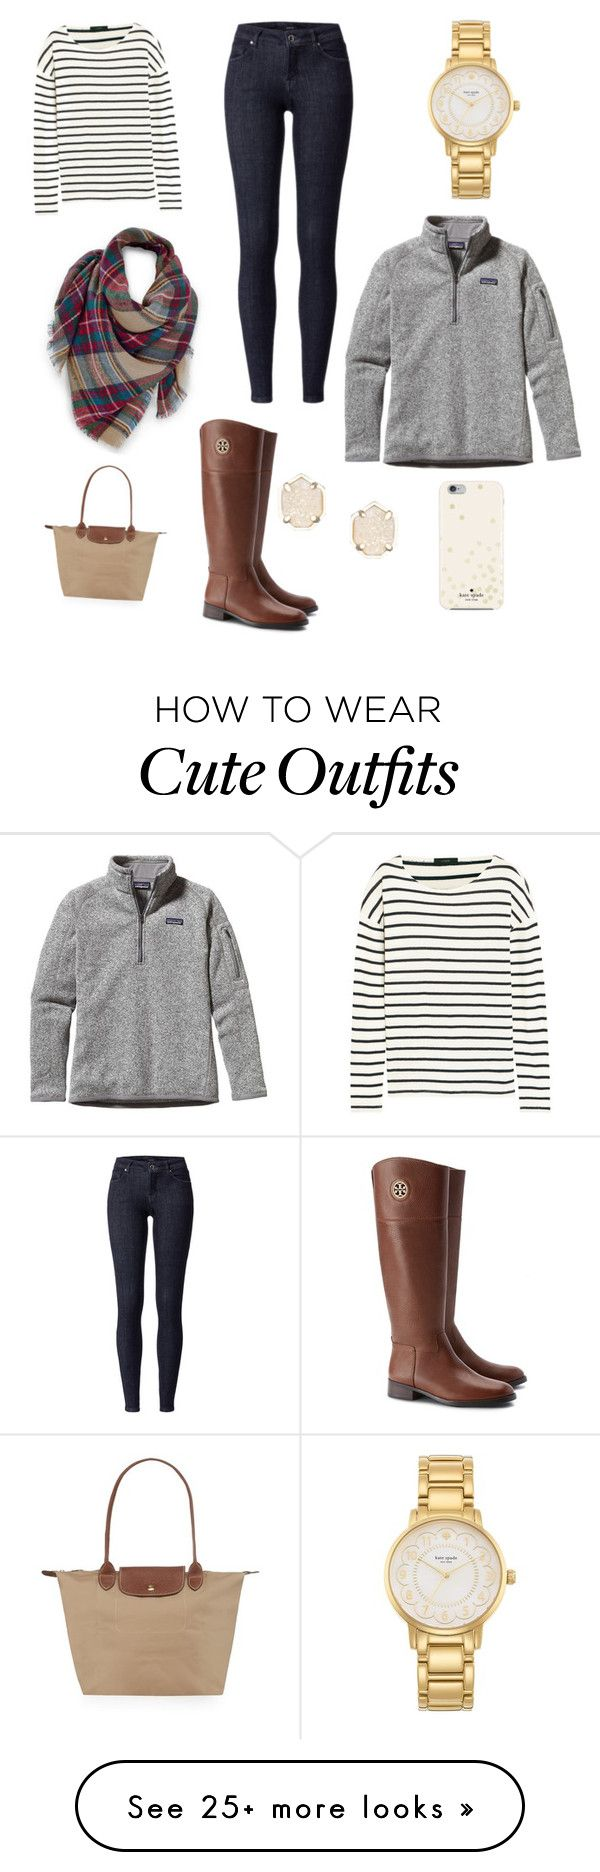 """""""Cute Fall/winter outfit"""" by elizabethcoleman04 on Polyvore featuring J.Crew, Venus, Kate Spade, Patagonia, Longchamp, Tory Burch and Kendra Scott"""